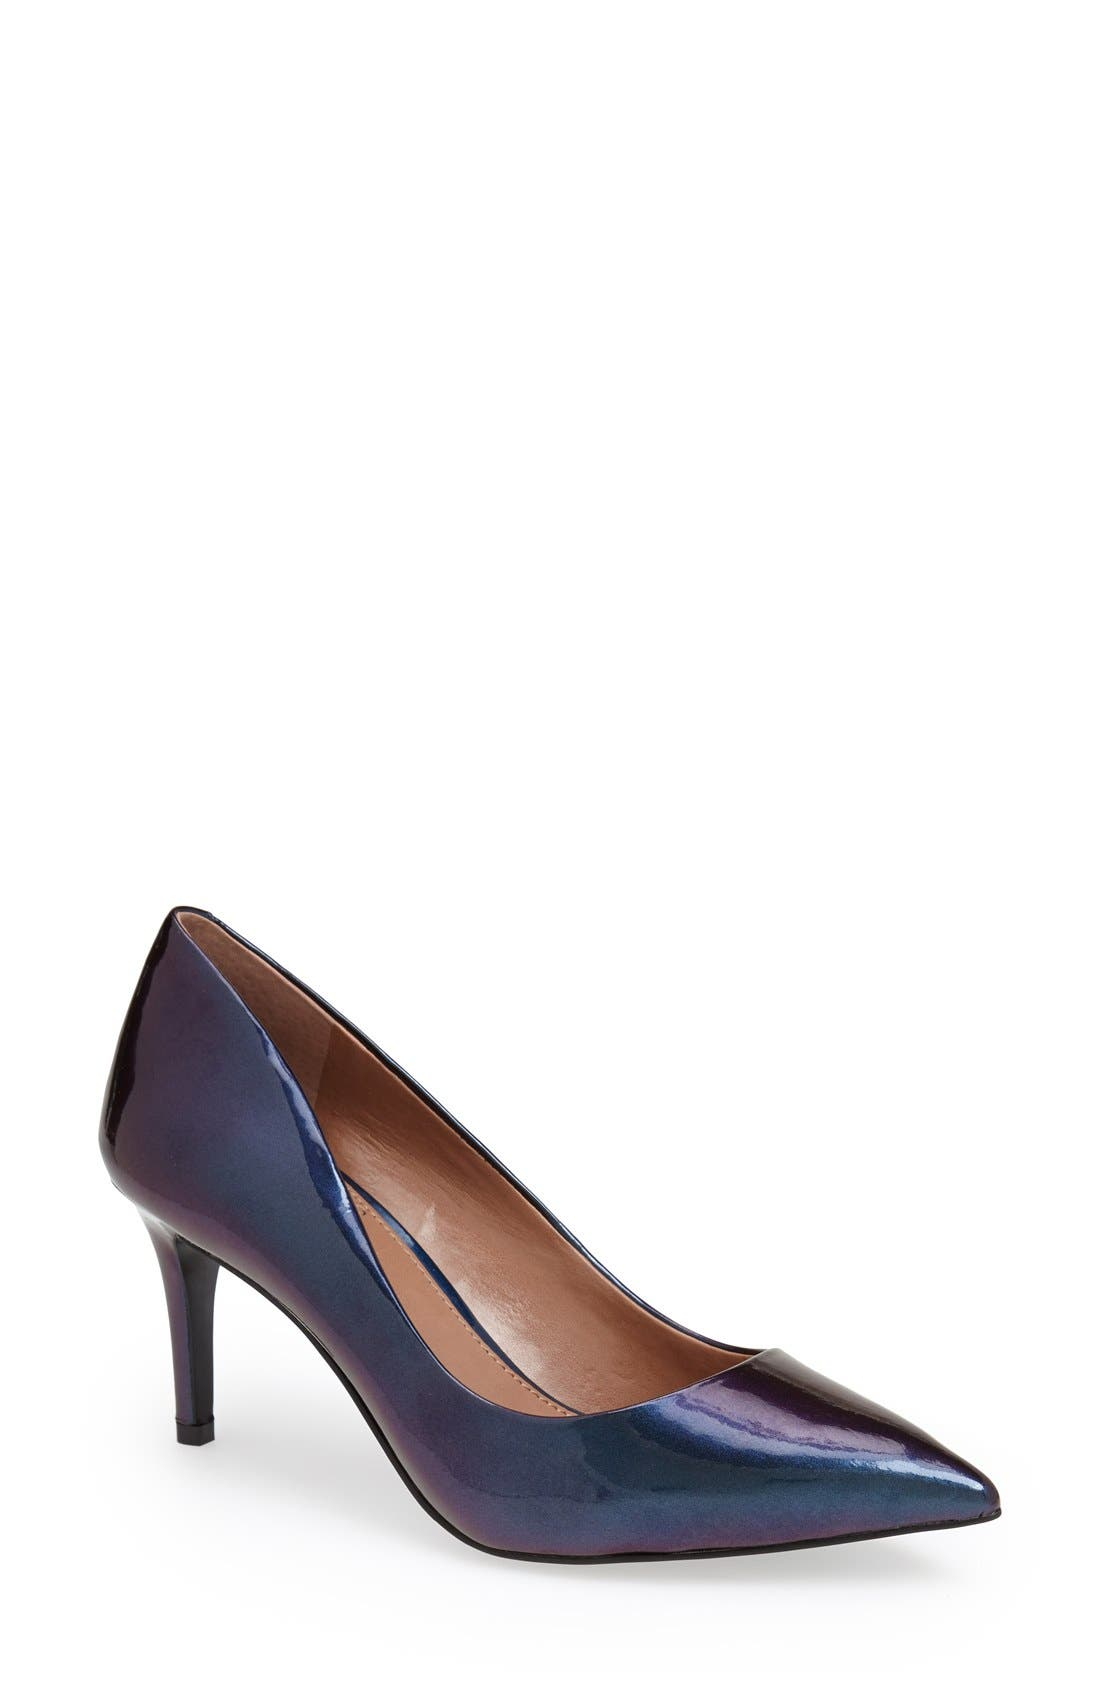 Main Image - Vince Camuto 'Cassina' Pointy Toe Pump (Women)